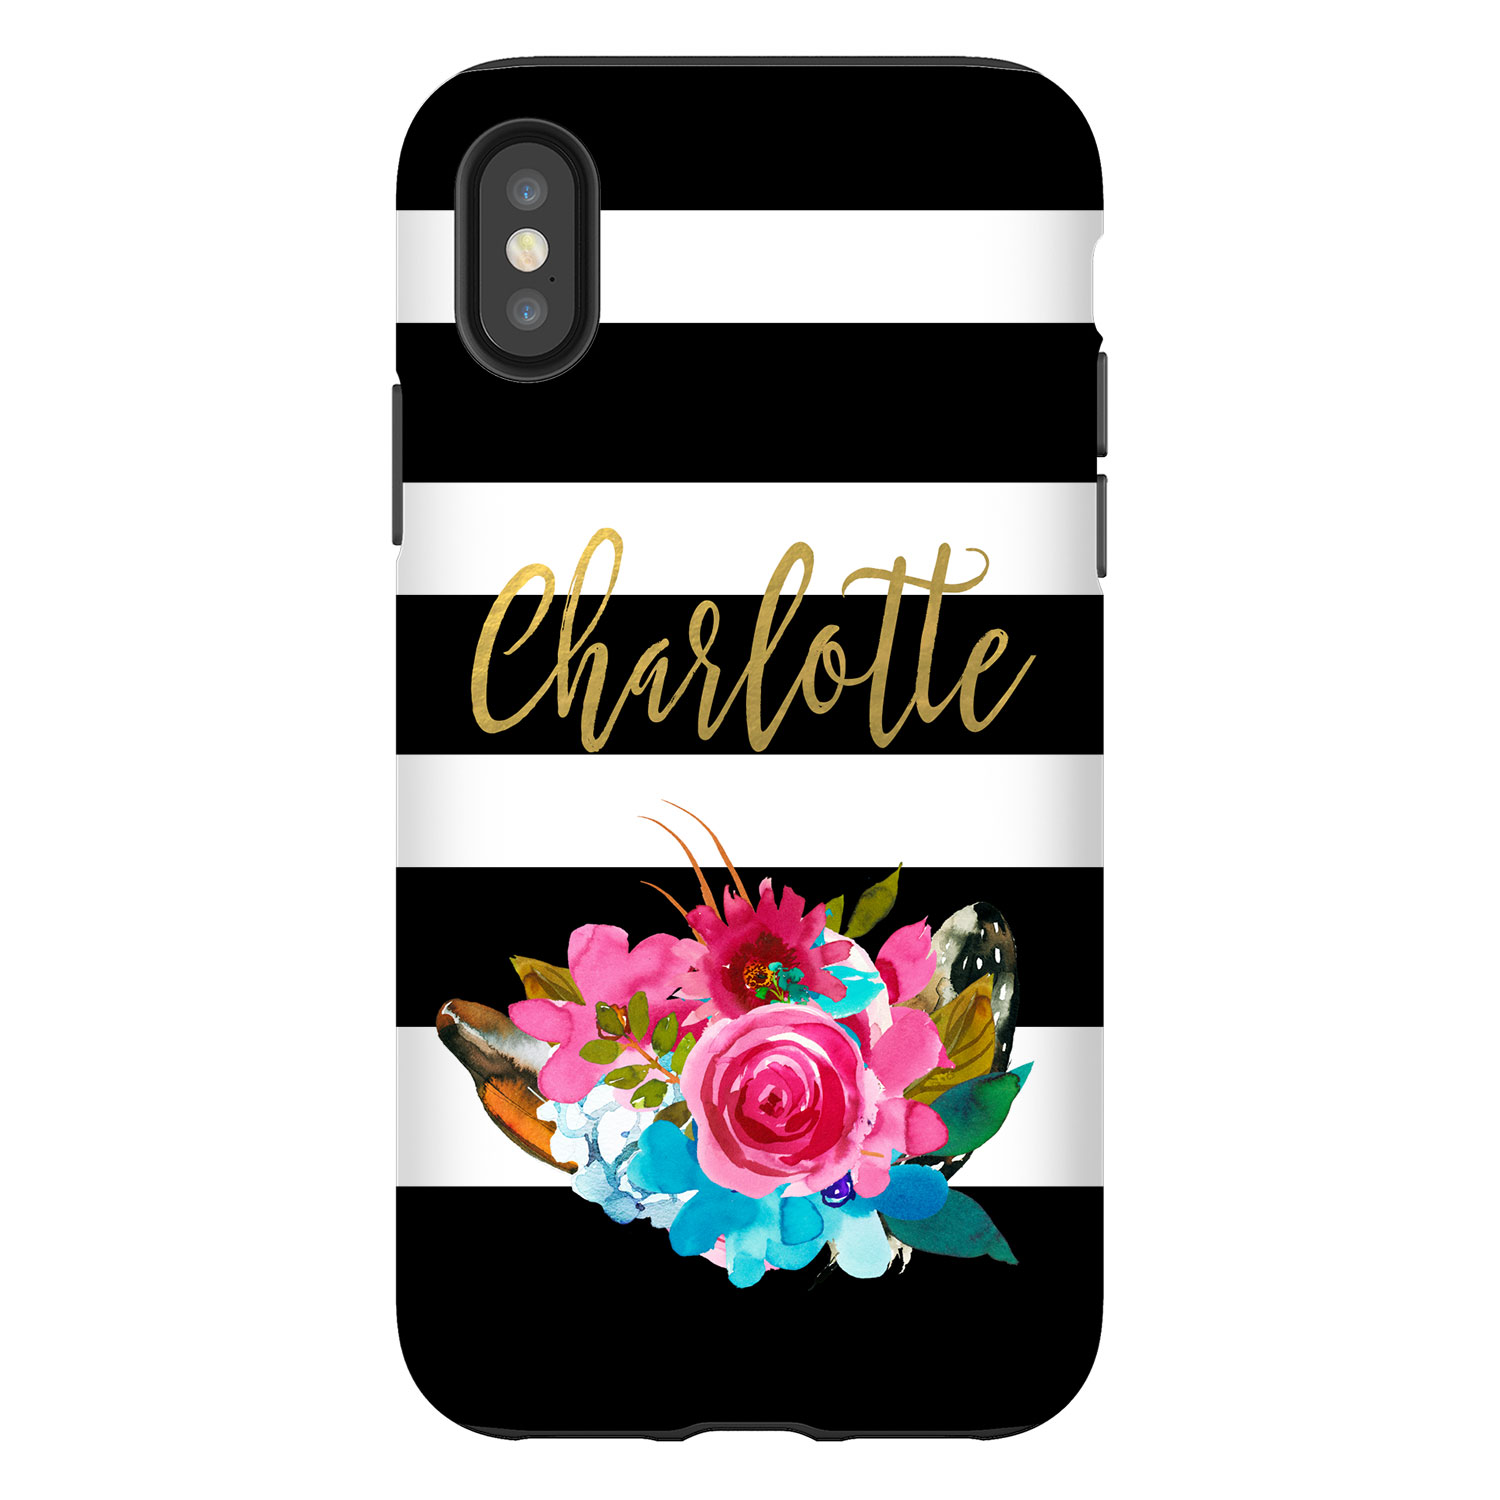 newest 10bfe 6368f Watercolor Strips Personalized Phone Case - iPhone, Samsung Case